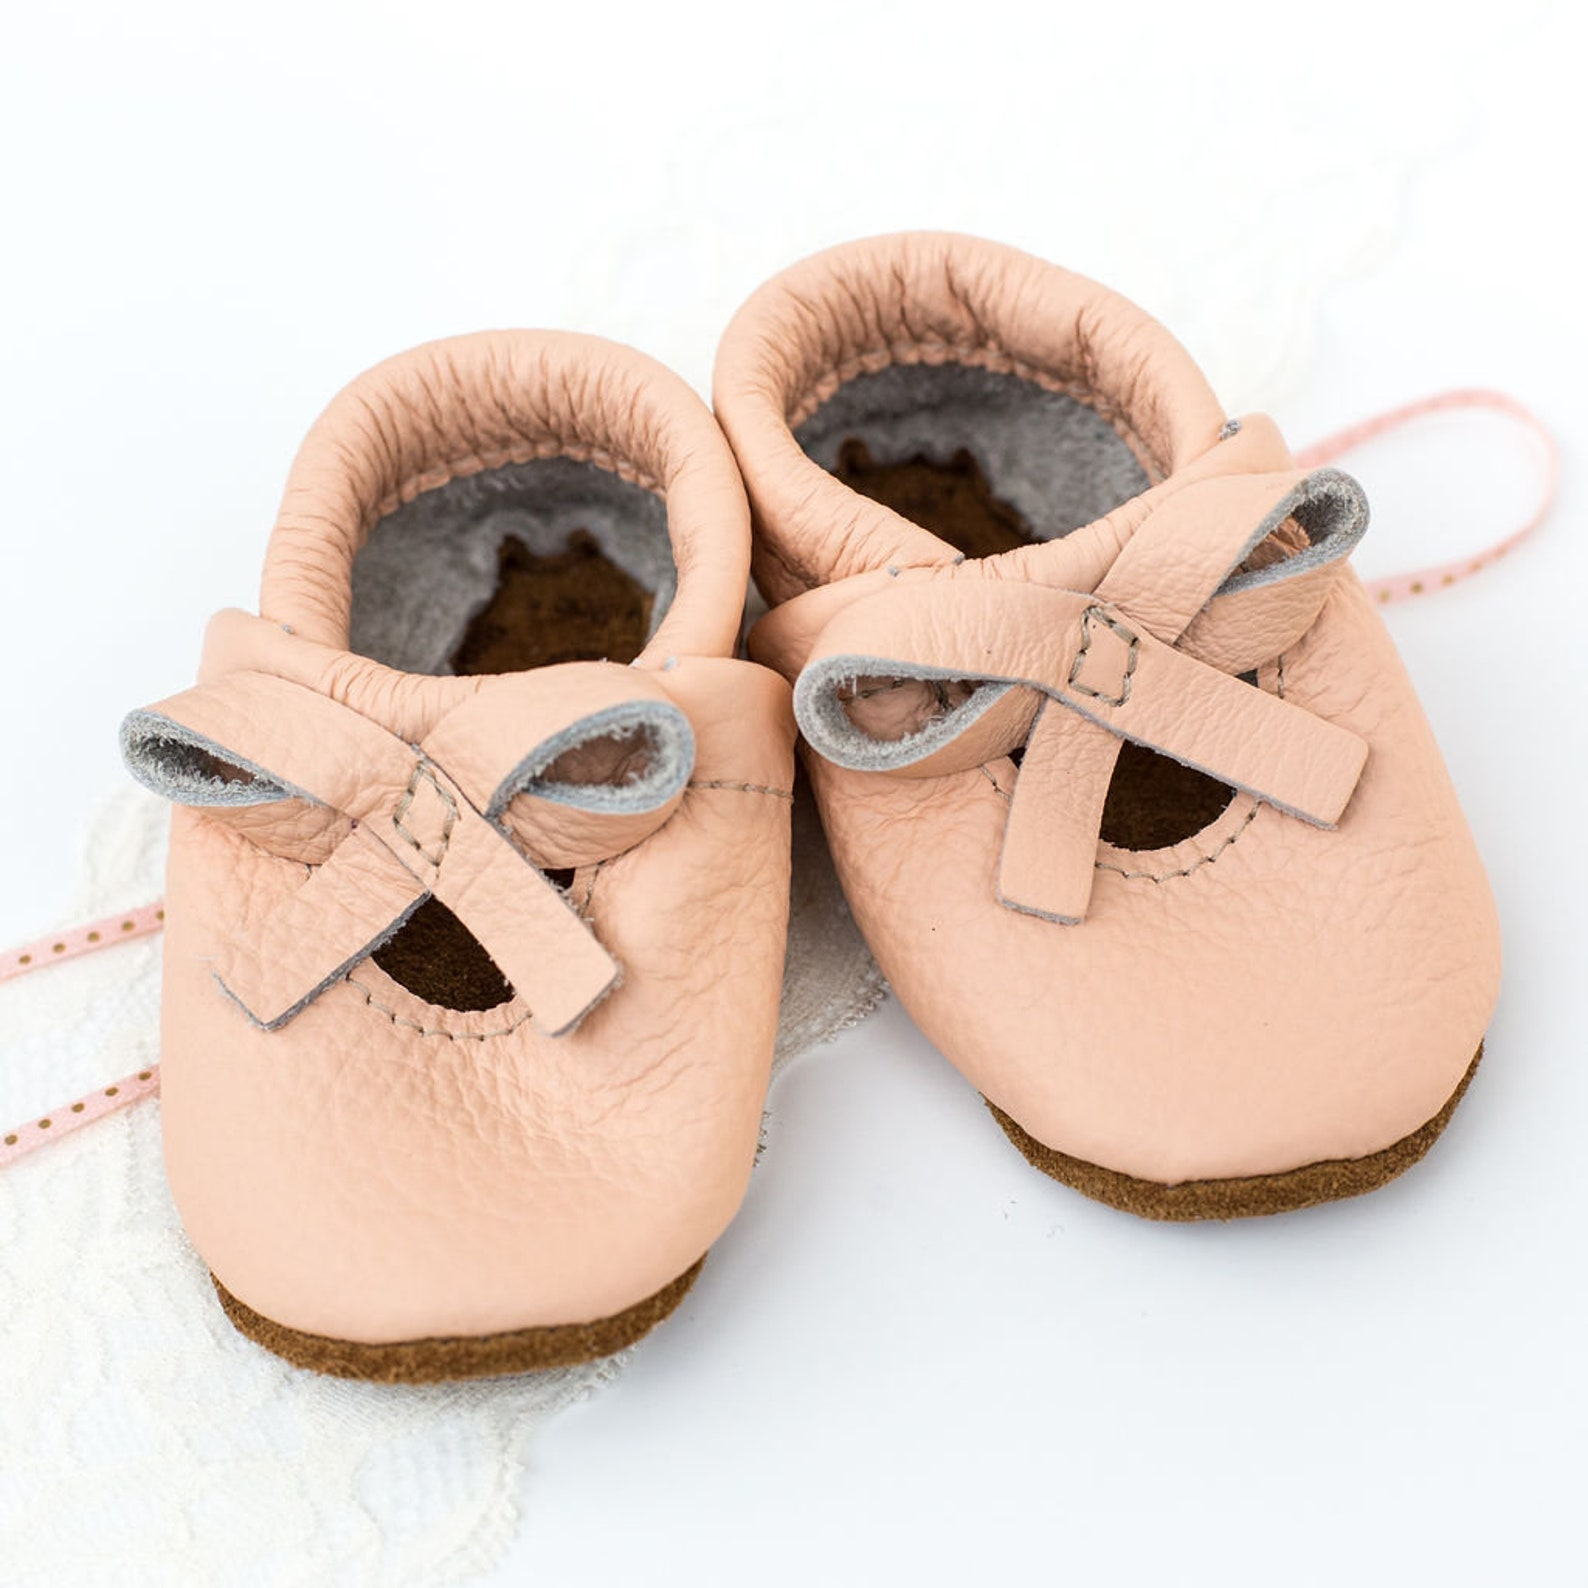 peach ballet bow flats soft soled leather shoes baby and toddler //free shipping in usa// starry knight design